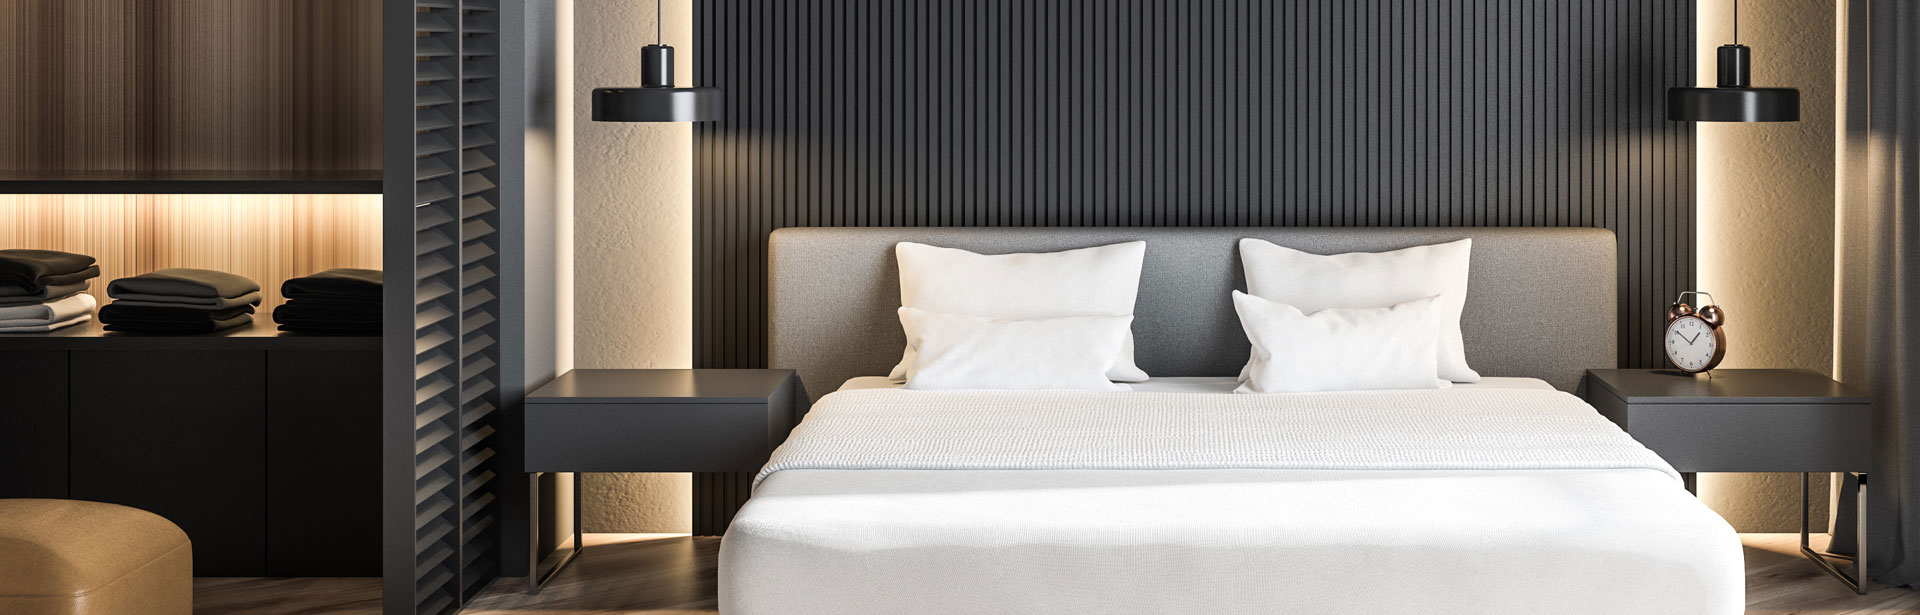 Multo HLED strip offers all the benefits of rigid strip technology but limits the length of the LED strip to under 3 metres - ideal for hotel rooms, cupboards, closets, joinery, kitchens, under the bench andseating applications.